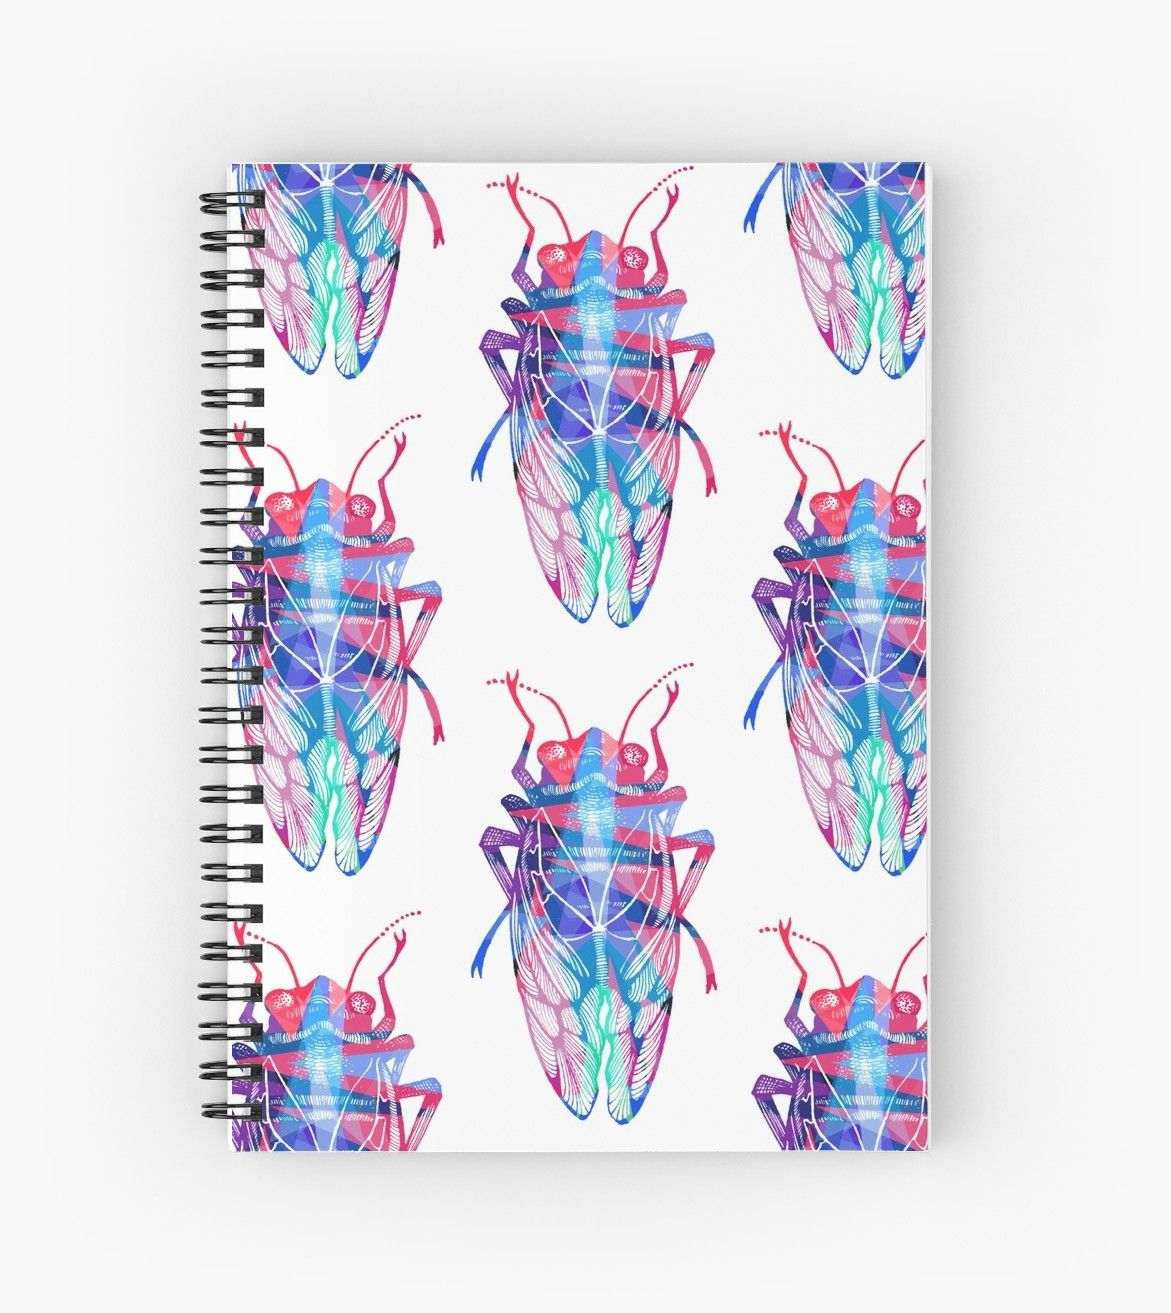 'Pop Art Insect Cicada' Spiral Notebook by meeco Pop